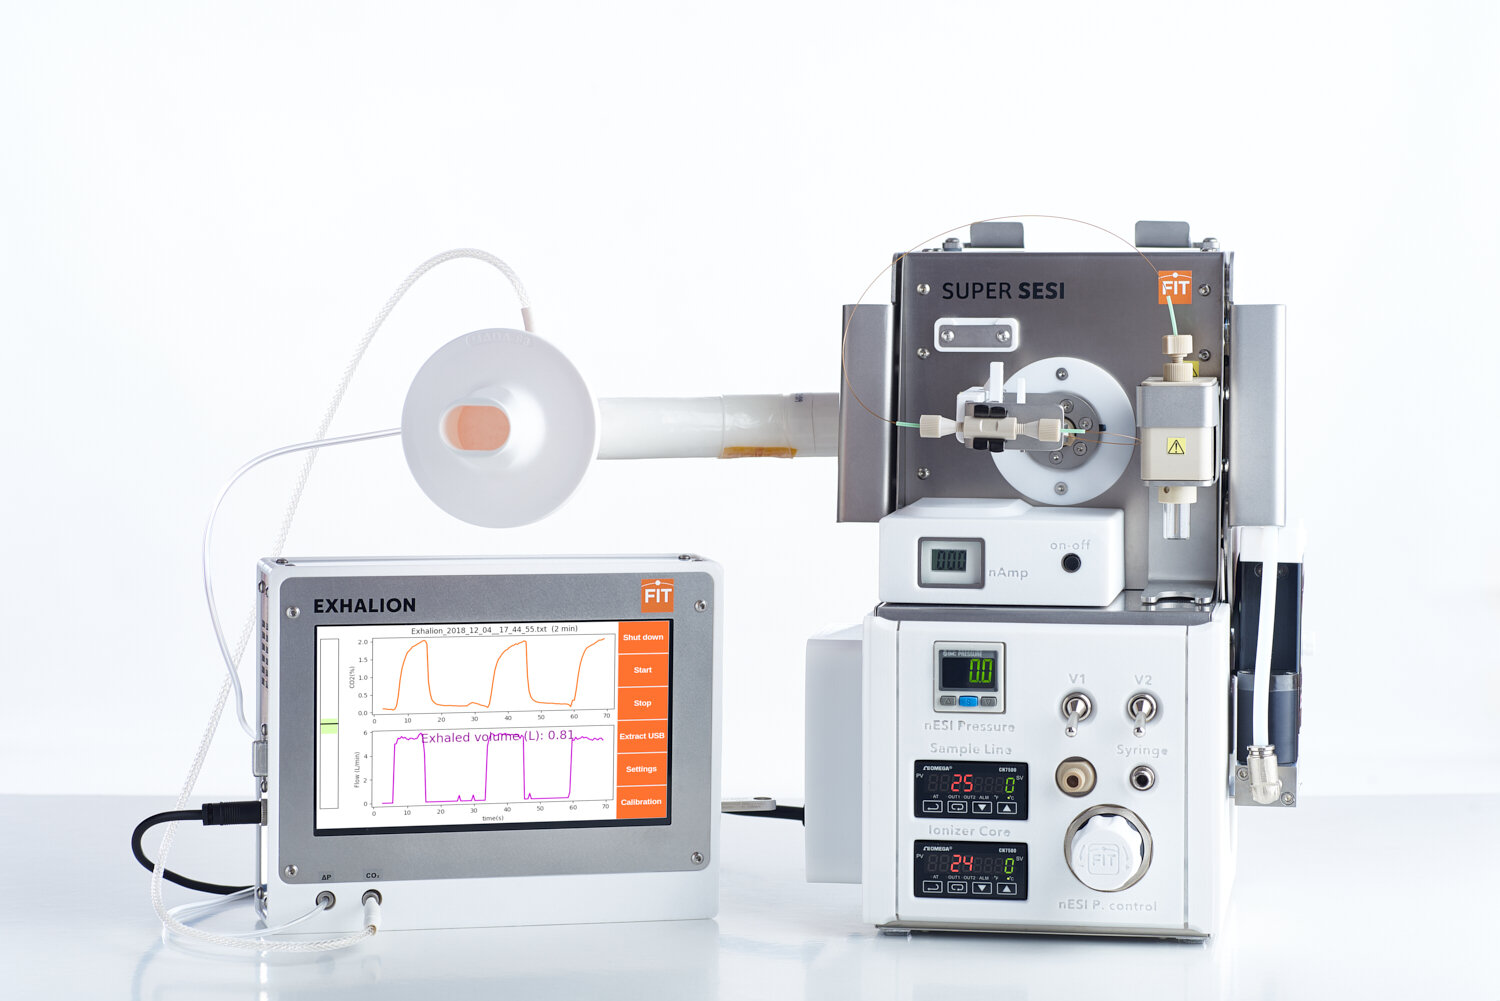 COUPLED TO SUPER SESI-MS - As a SUPER SESI gadget, EXHALION standardizes breath analysis.